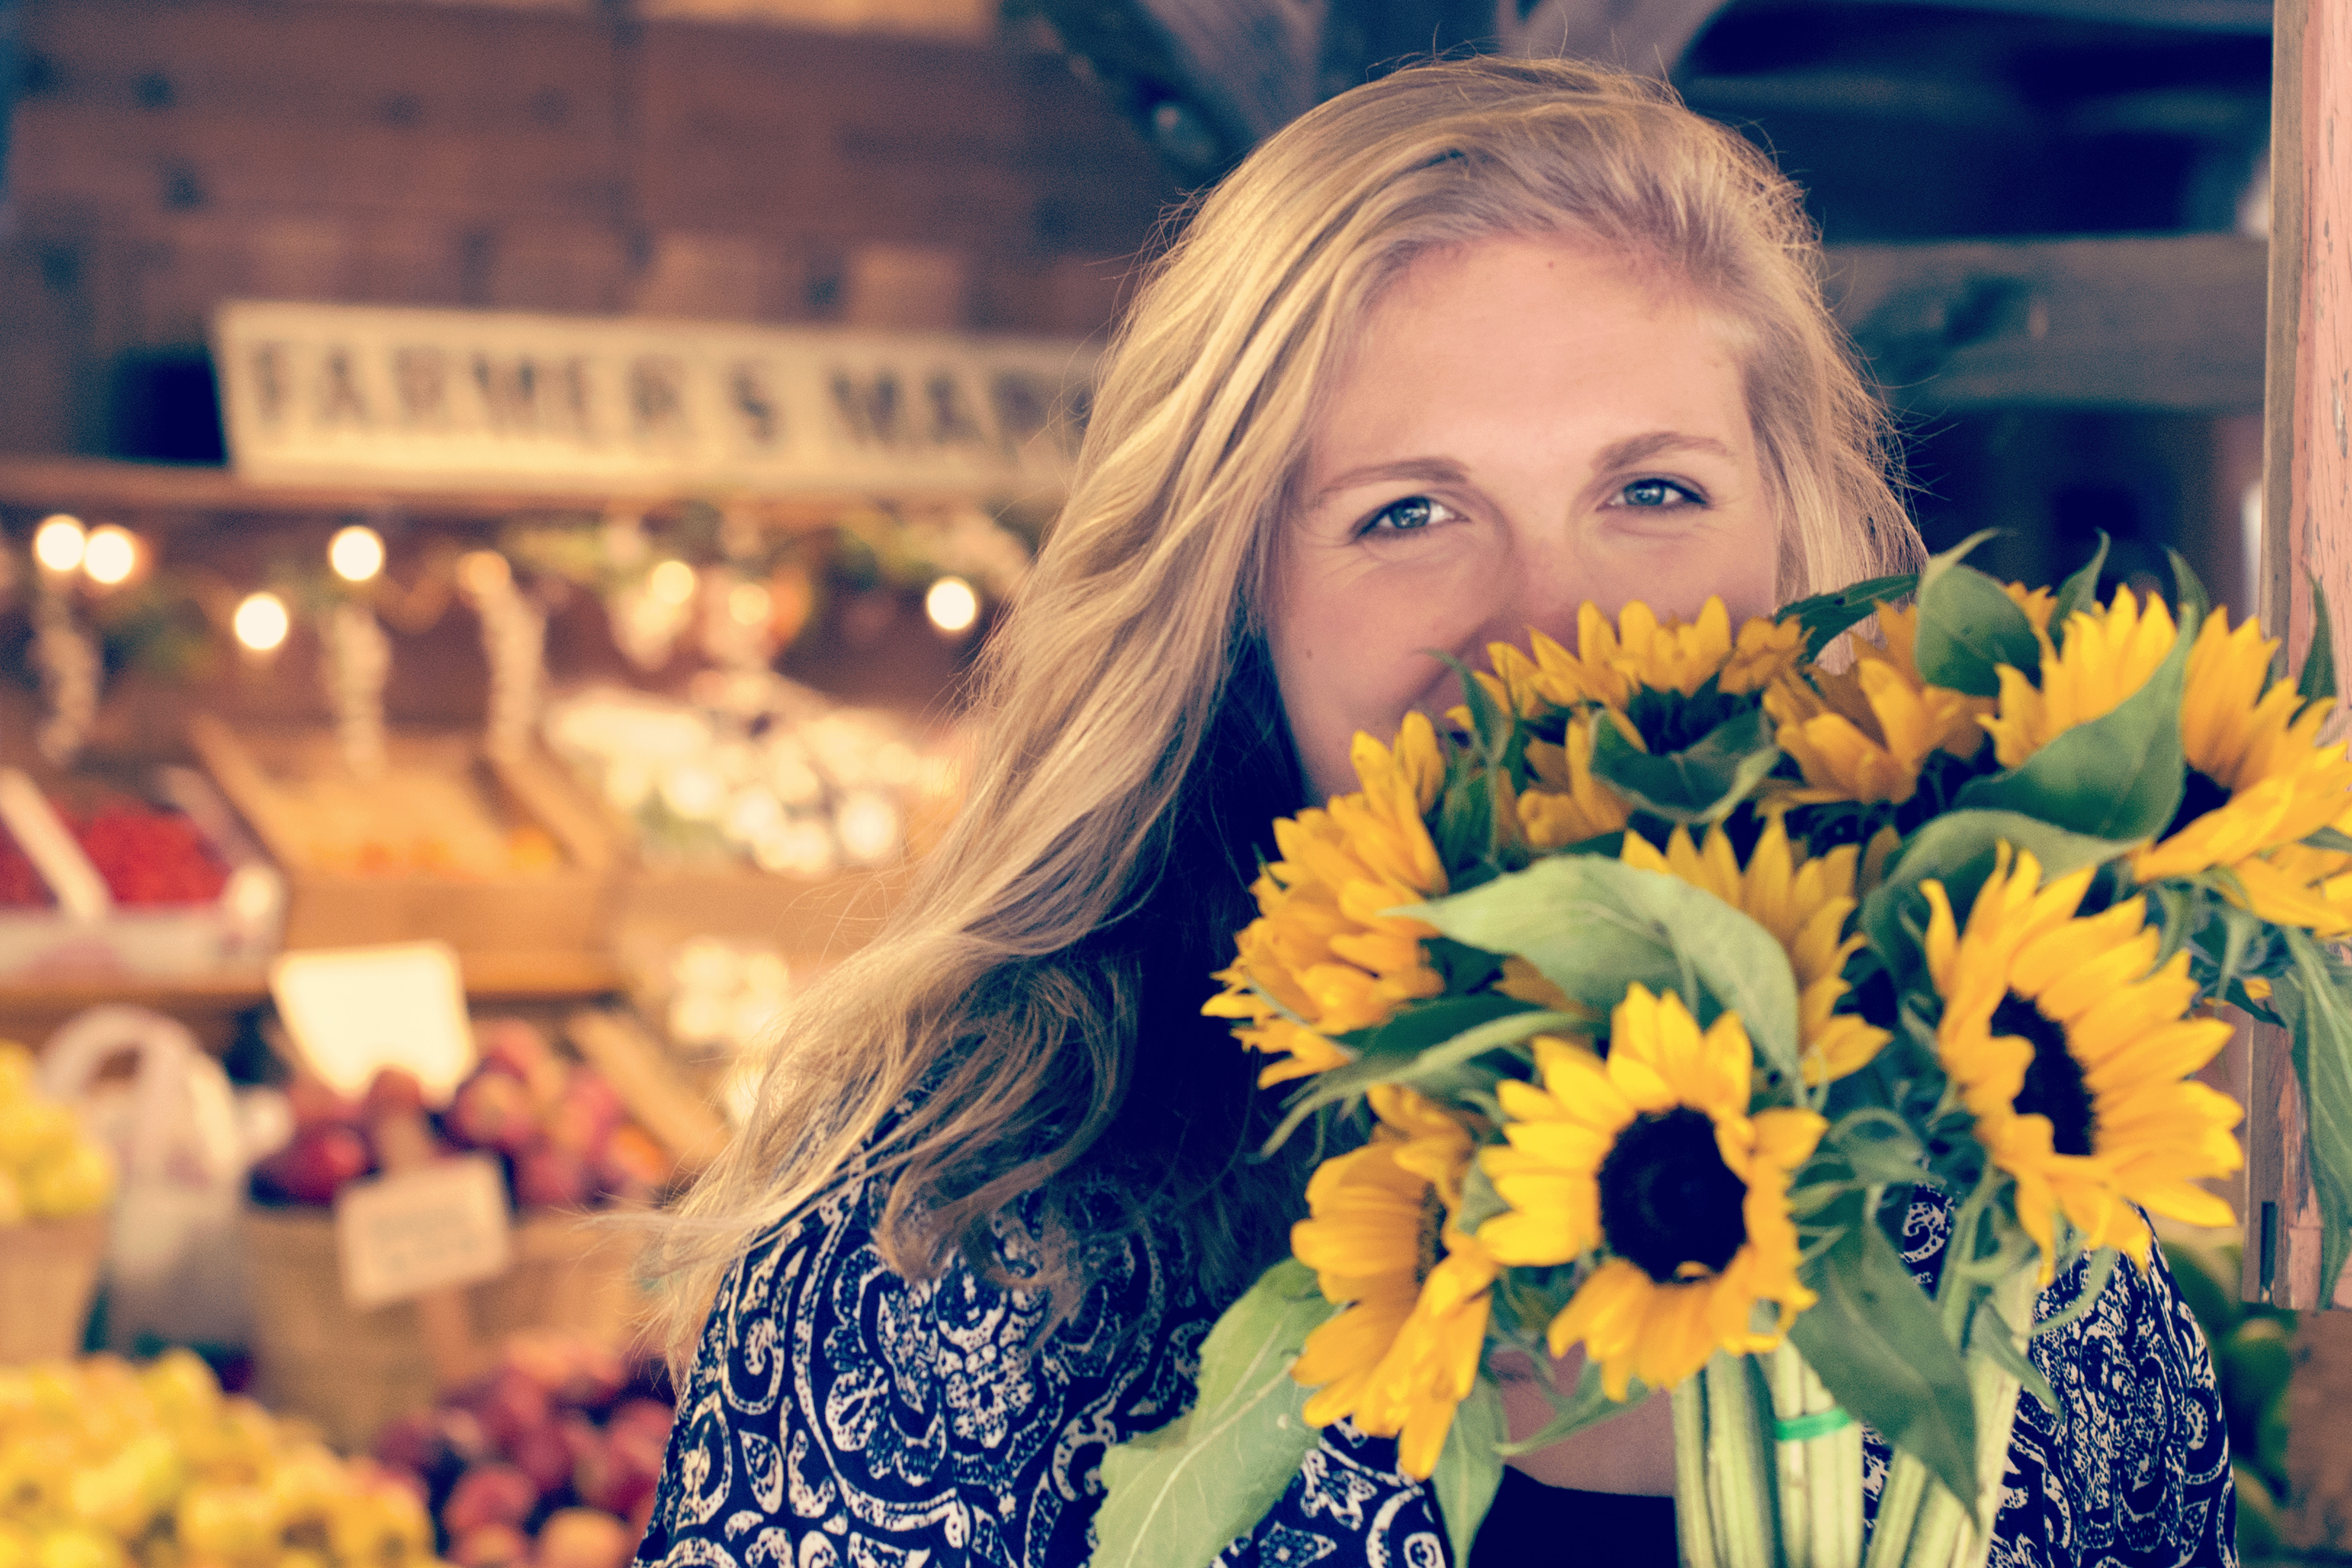 A woman in front of produce at Avila Valley Barn, holding a bouquet of sunflowers